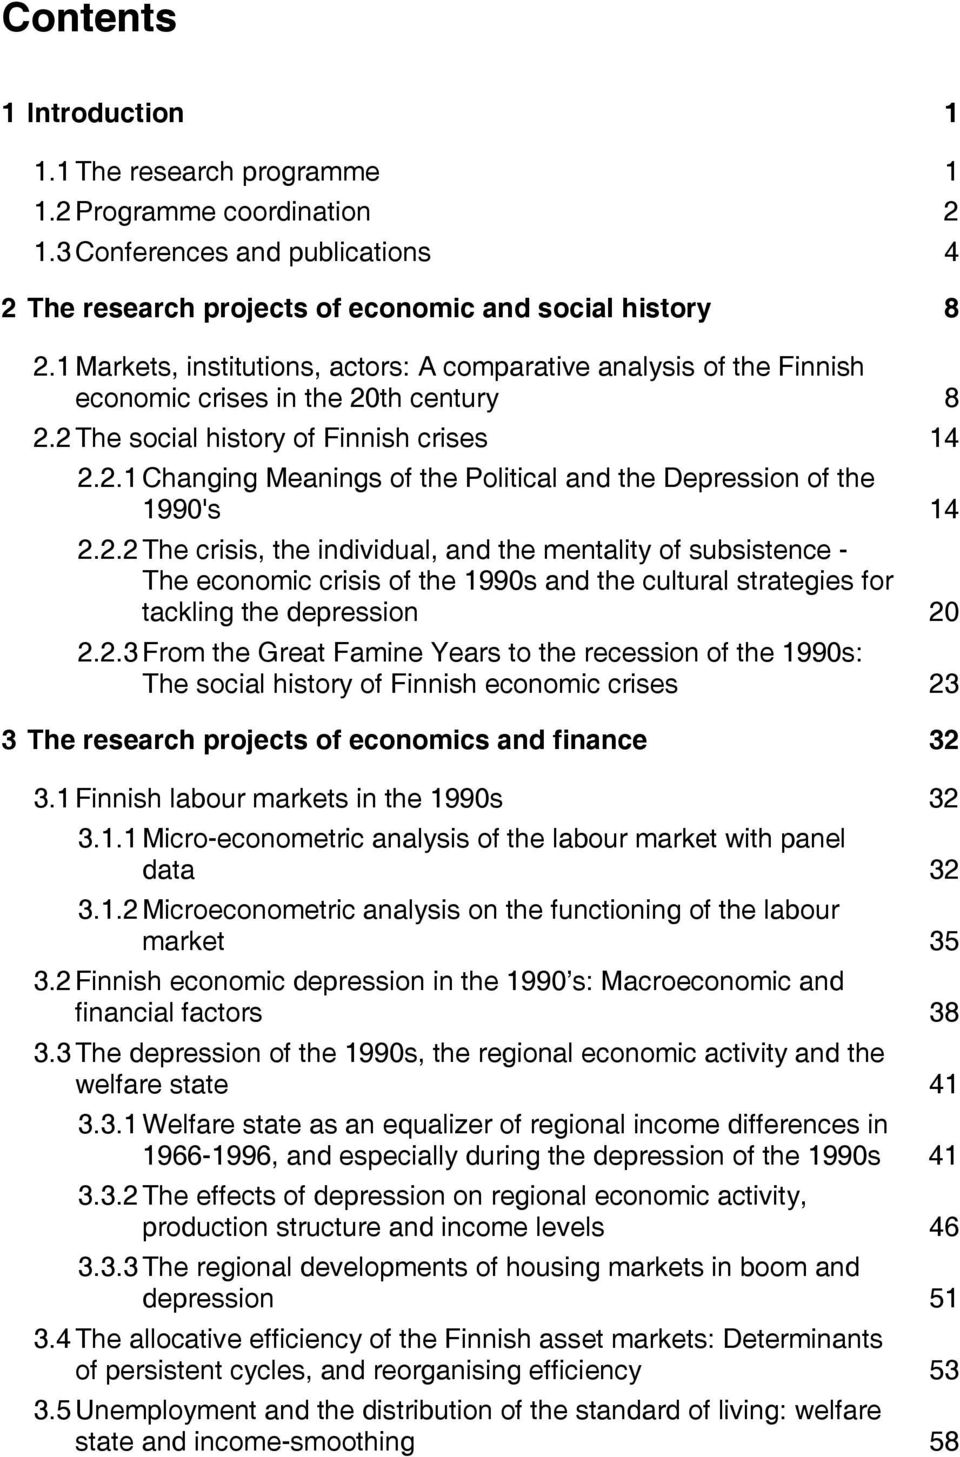 2.2 The crisis, the individual, and the mentality of subsistence - The economic crisis of the 1990s and the cultural strategies for tackling the depression 20 2.2.3 From the Great Famine Years to the recession of the 1990s: The social history of Finnish economic crises 23 3 The research projects of economics and finance 32 3.